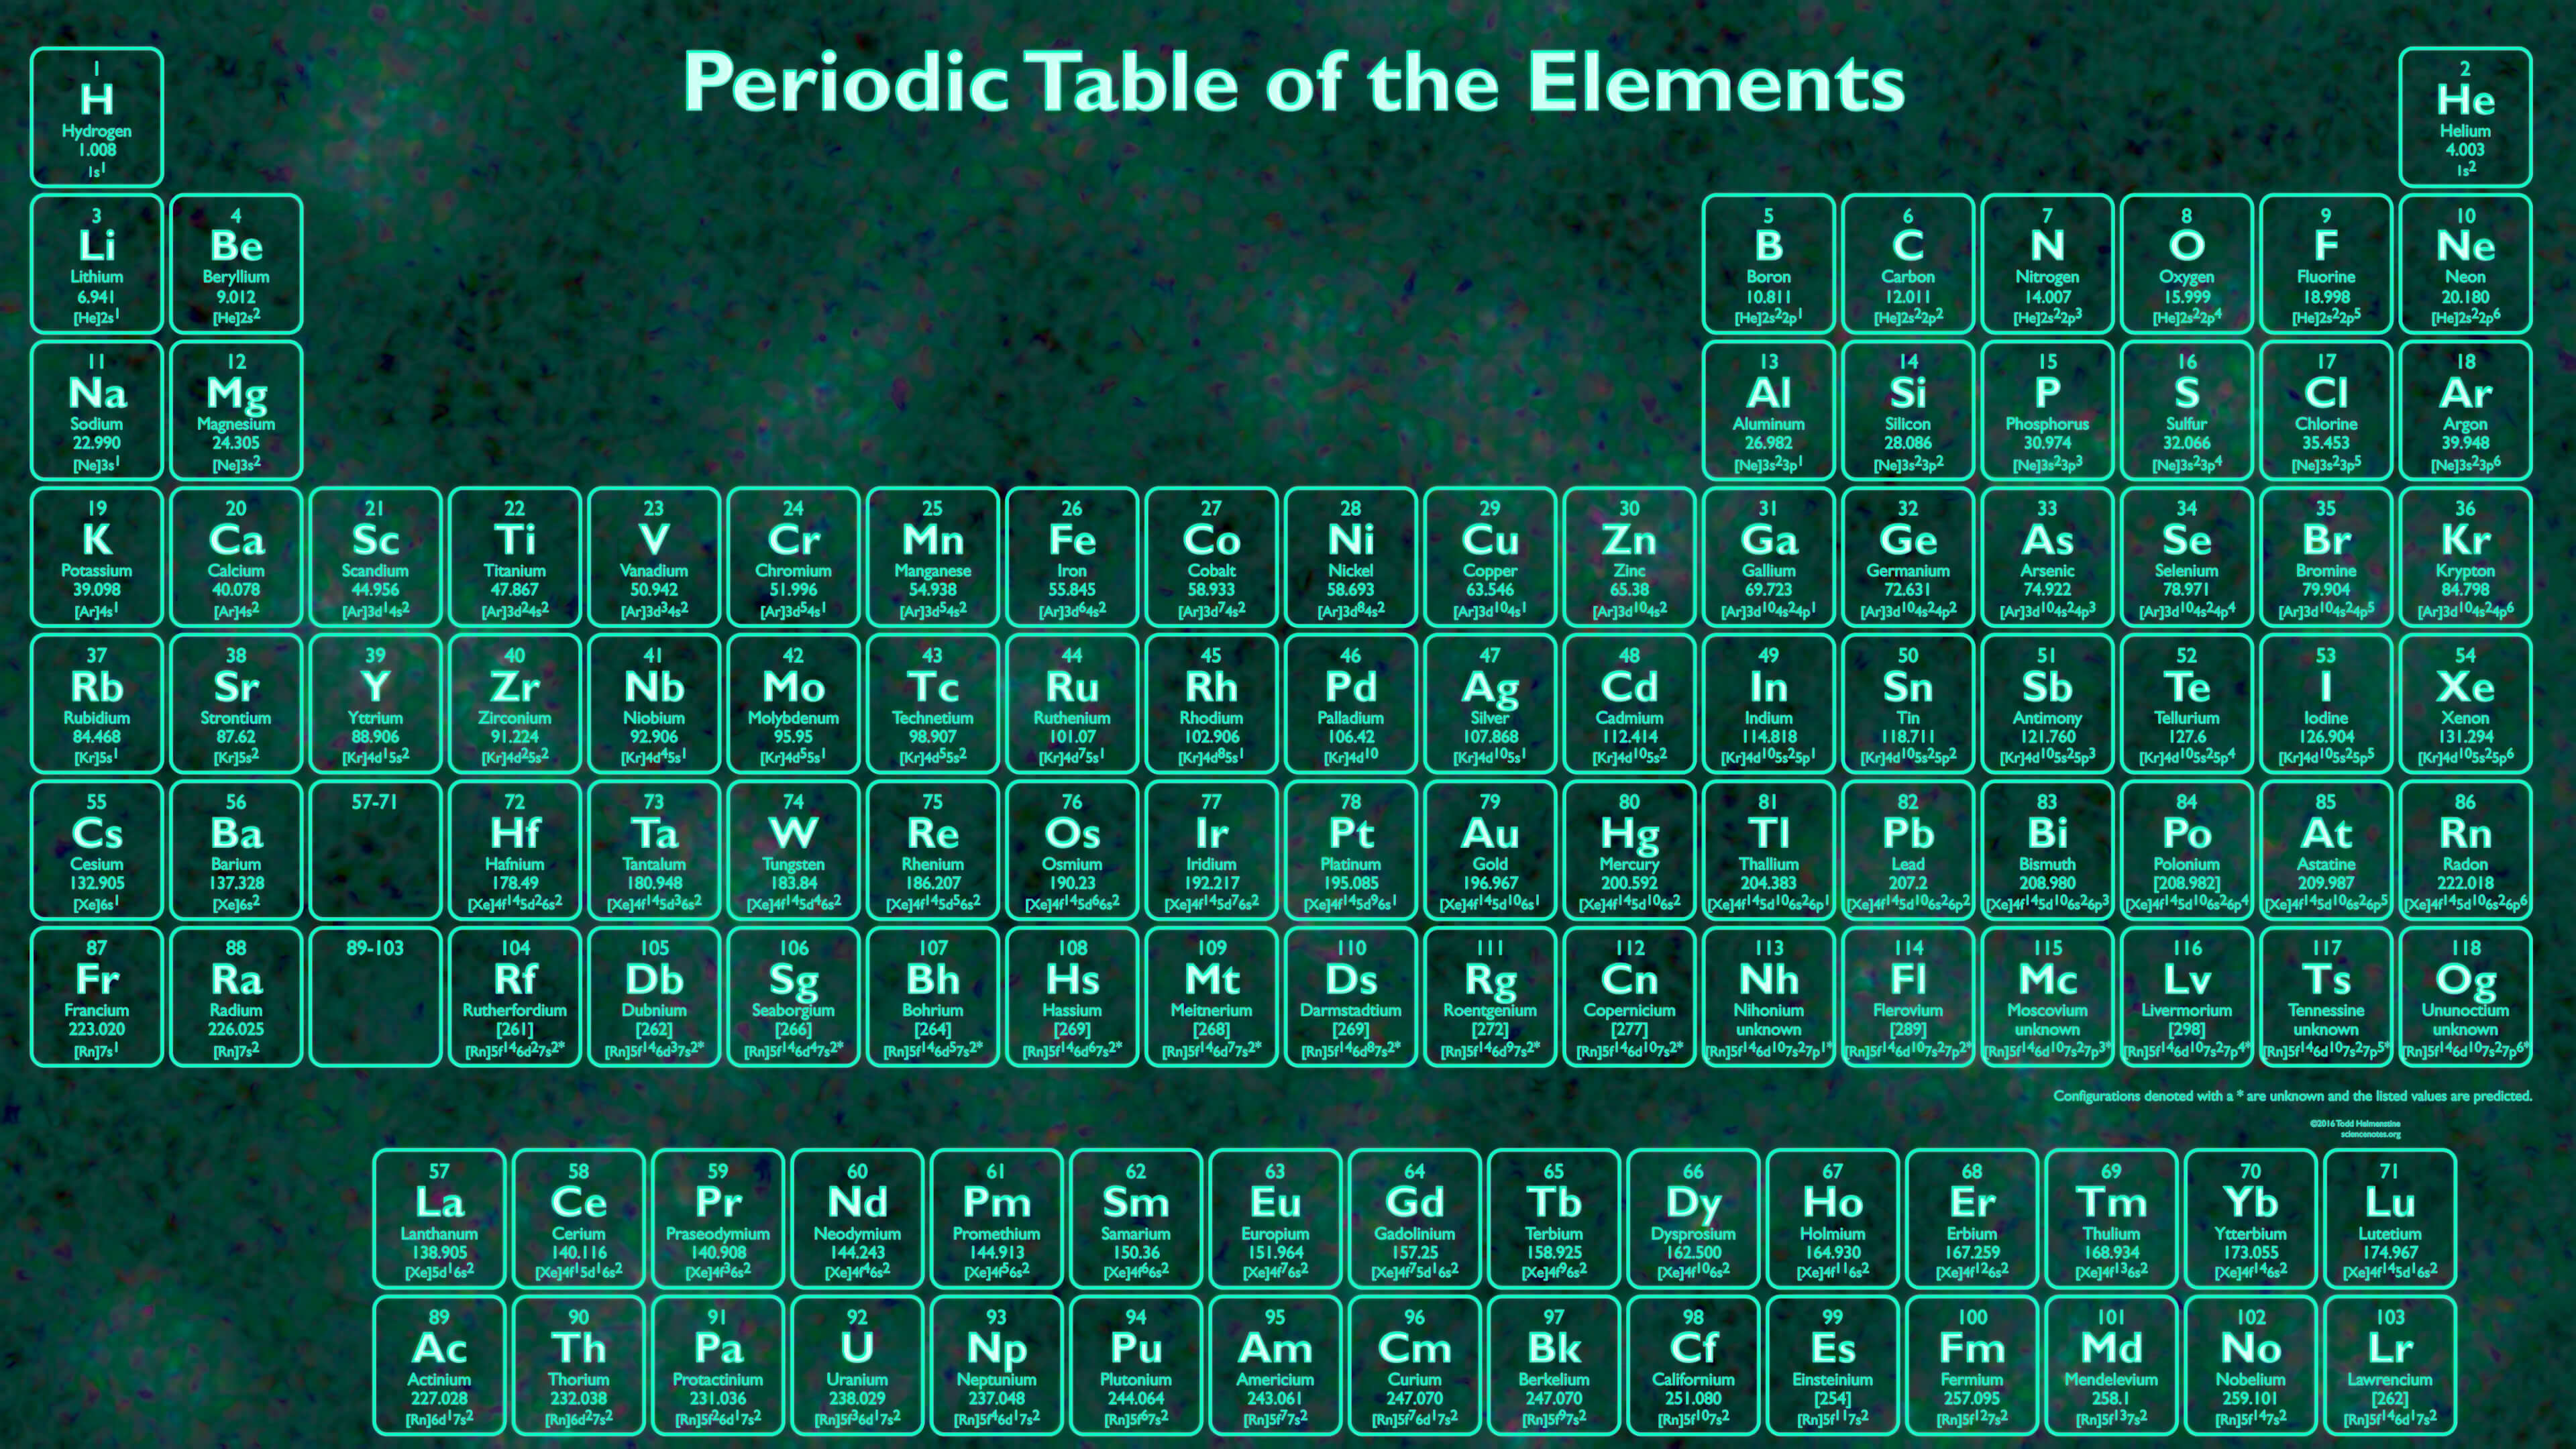 Glow in the dark 4k periodic table wallpaper with 118 elements glow in the dark 4k periodic table with 118 elements gamestrikefo Choice Image